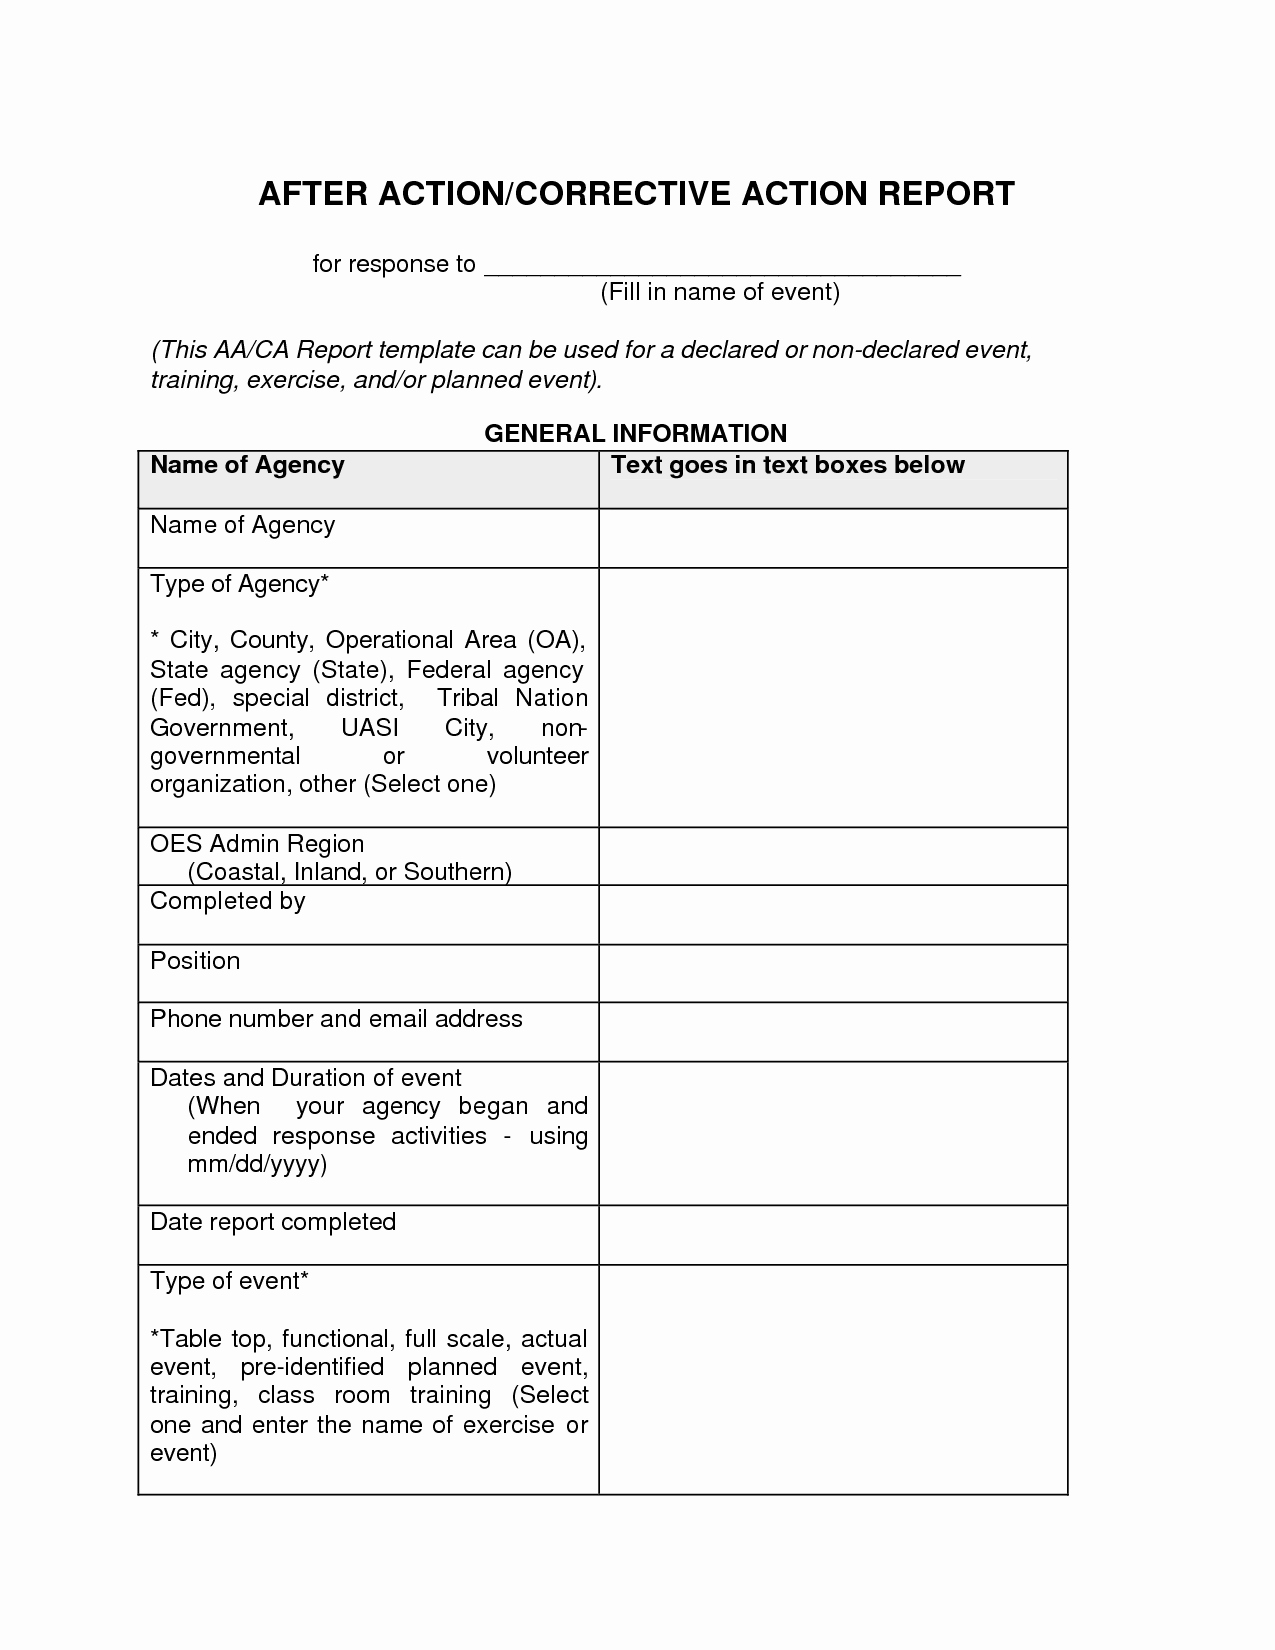 After Action Report Template Beautiful after Action Report Template